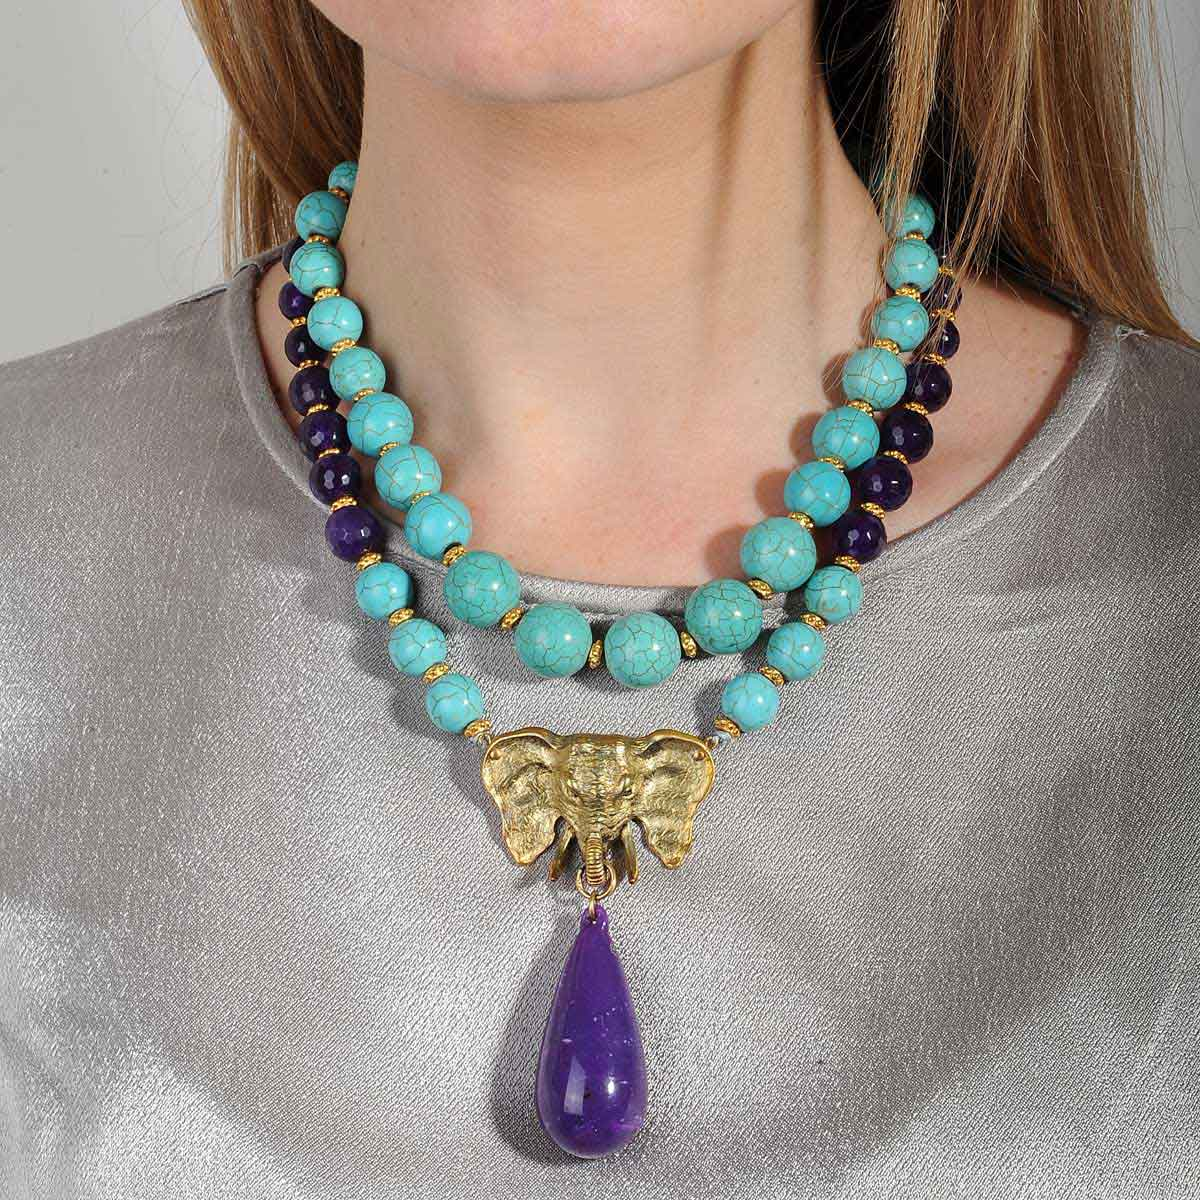 STATEMENT NECKLACE WITH TURQUOISE AND AMETHYST KATERINA PSOMA